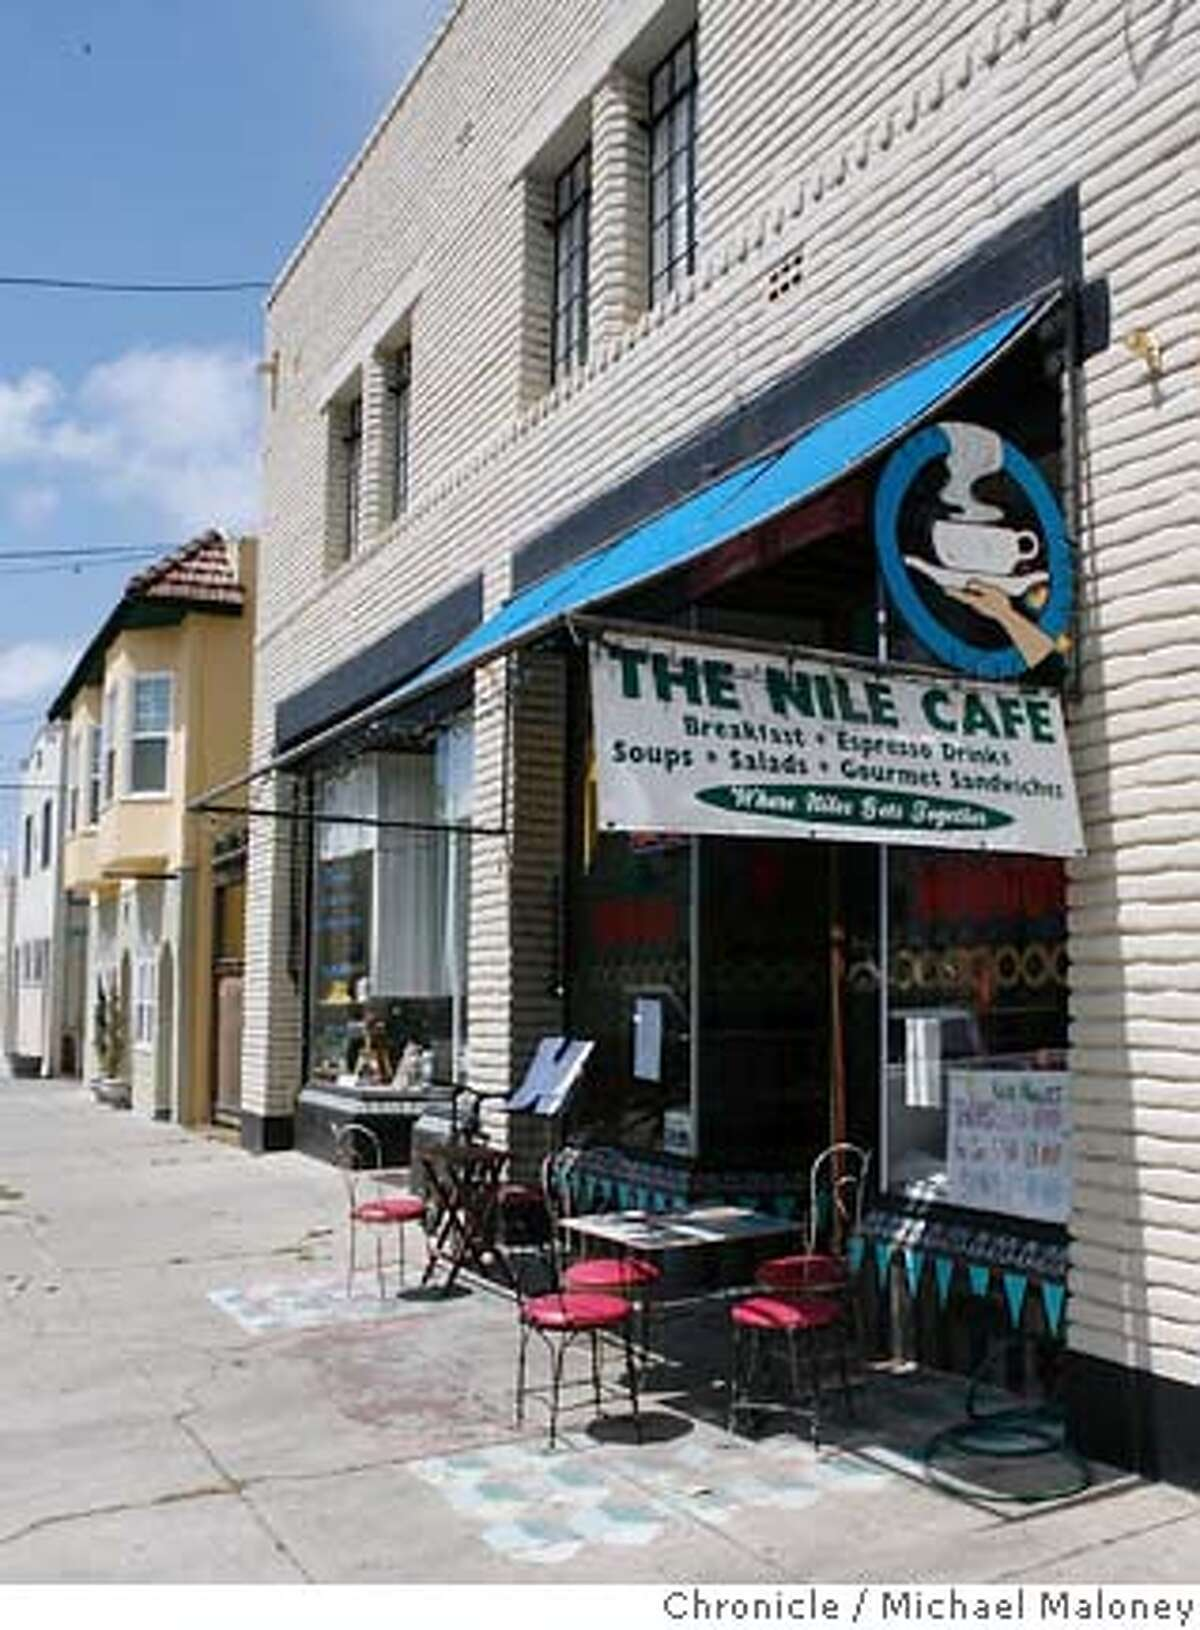 Street Date - Niles Blvd., Fremont. The Nile Cafe. 121 I Street is where the locals come to meet and eat. (510) 791-6049 Photo by Michael Maloney / San Francisco Chronicle on 5/25/06 in Fremont,CA Ran on: 06-01-2006 Left, a Charlie Chaplin wall hanging at Bite & Browse Antique Collective; below far left, Wayne Corrie of Corrie Glass heats up a nugget of italian soft glass to shape it into jewelry; below left, the Nile Cafe, where the locals come to meet and eat.